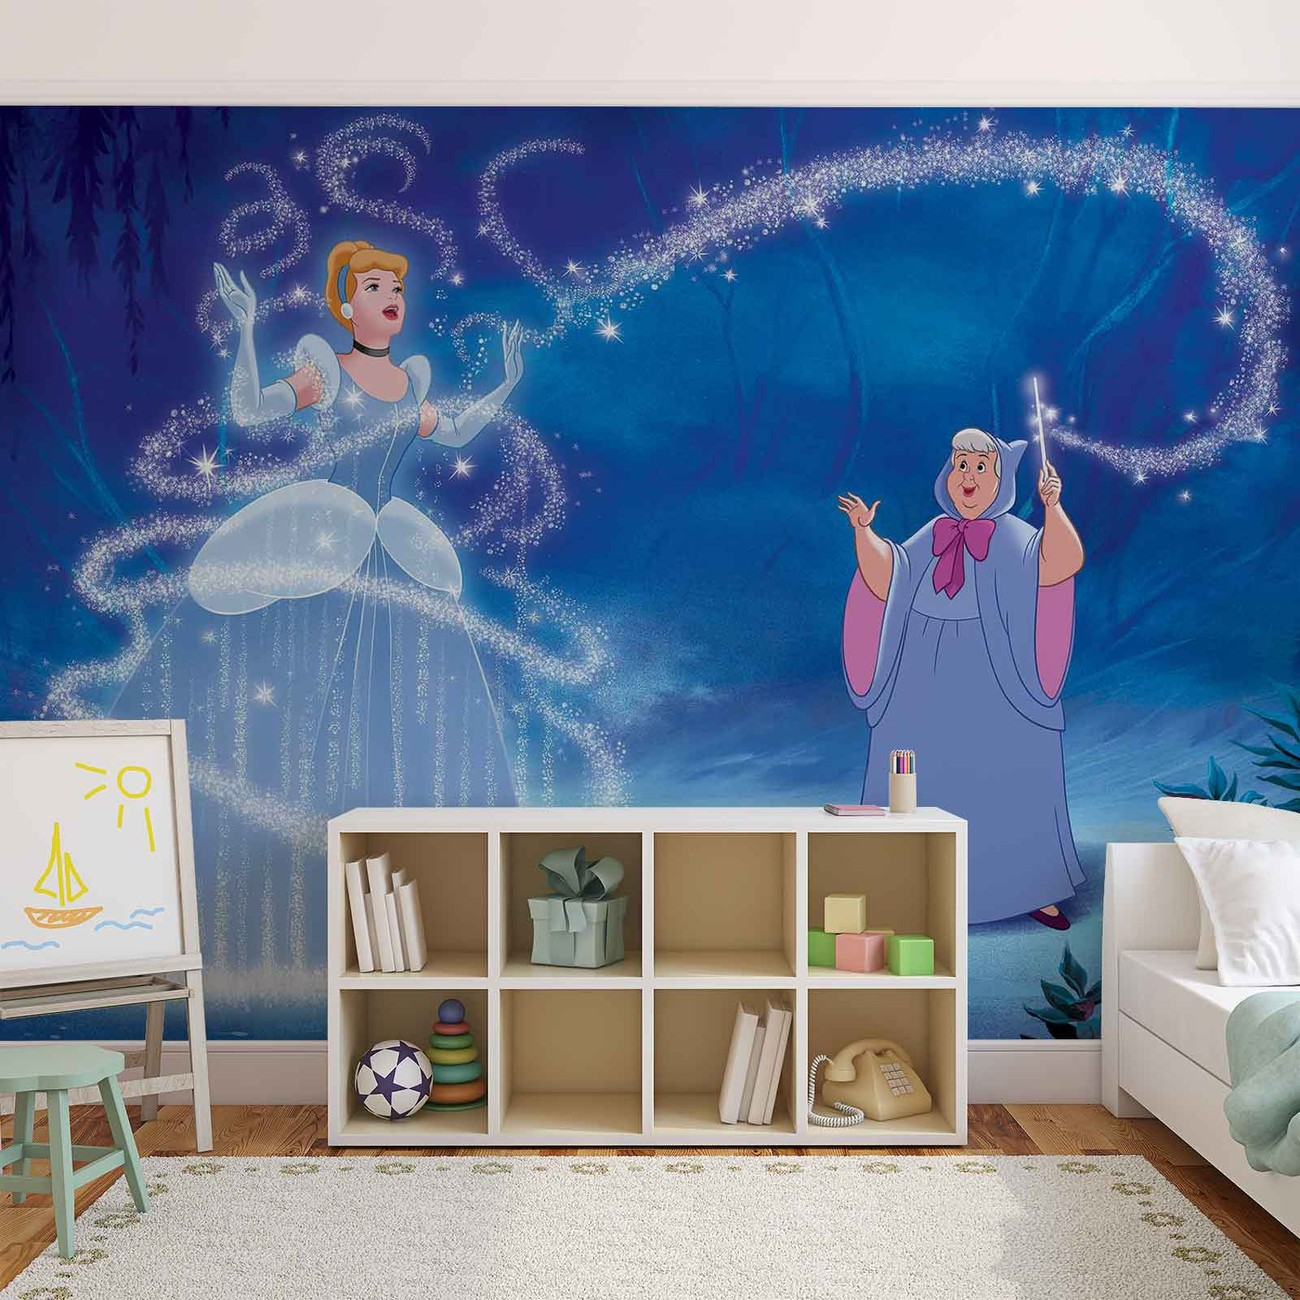 Disney princesses cinderella wall paper mural buy at for Disney princess wallpaper mural uk